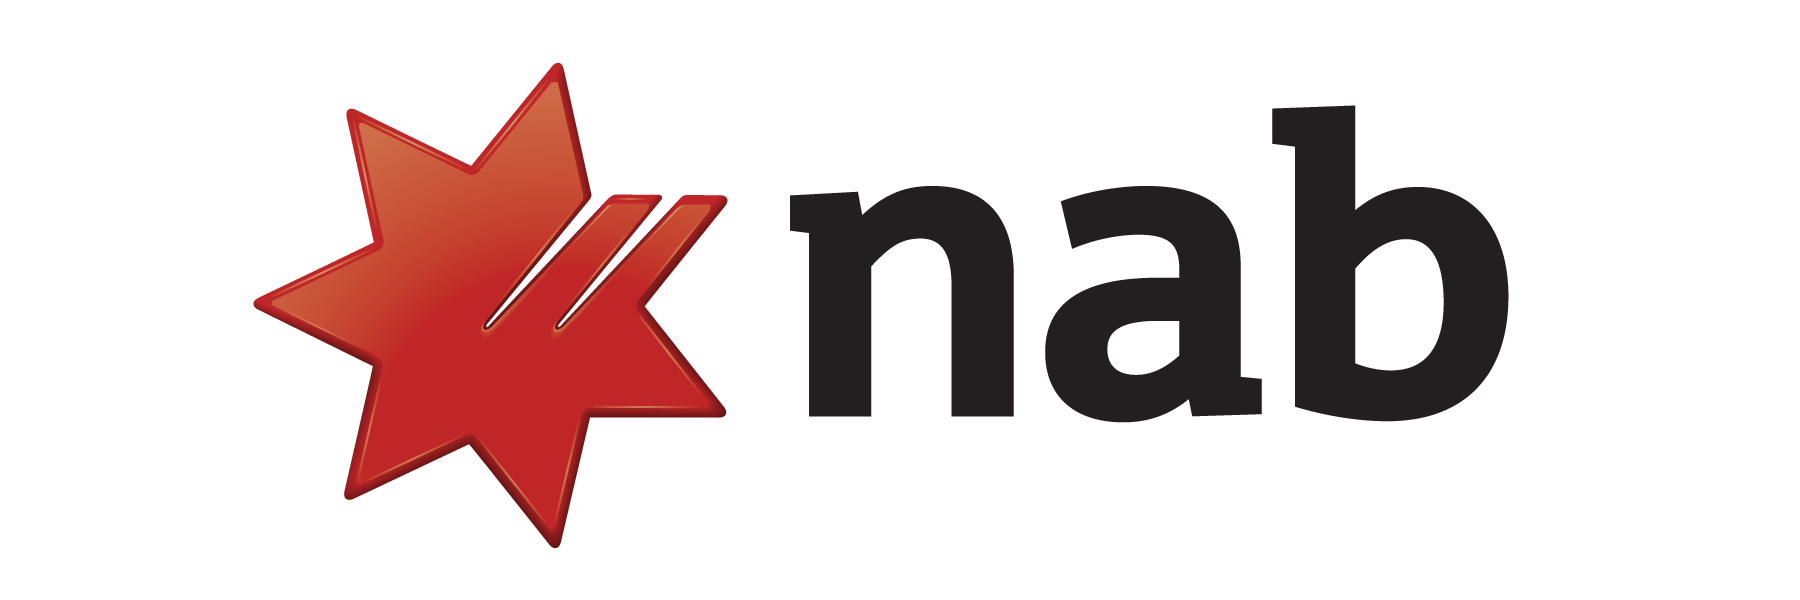 National_Australia_Bank_logo.png